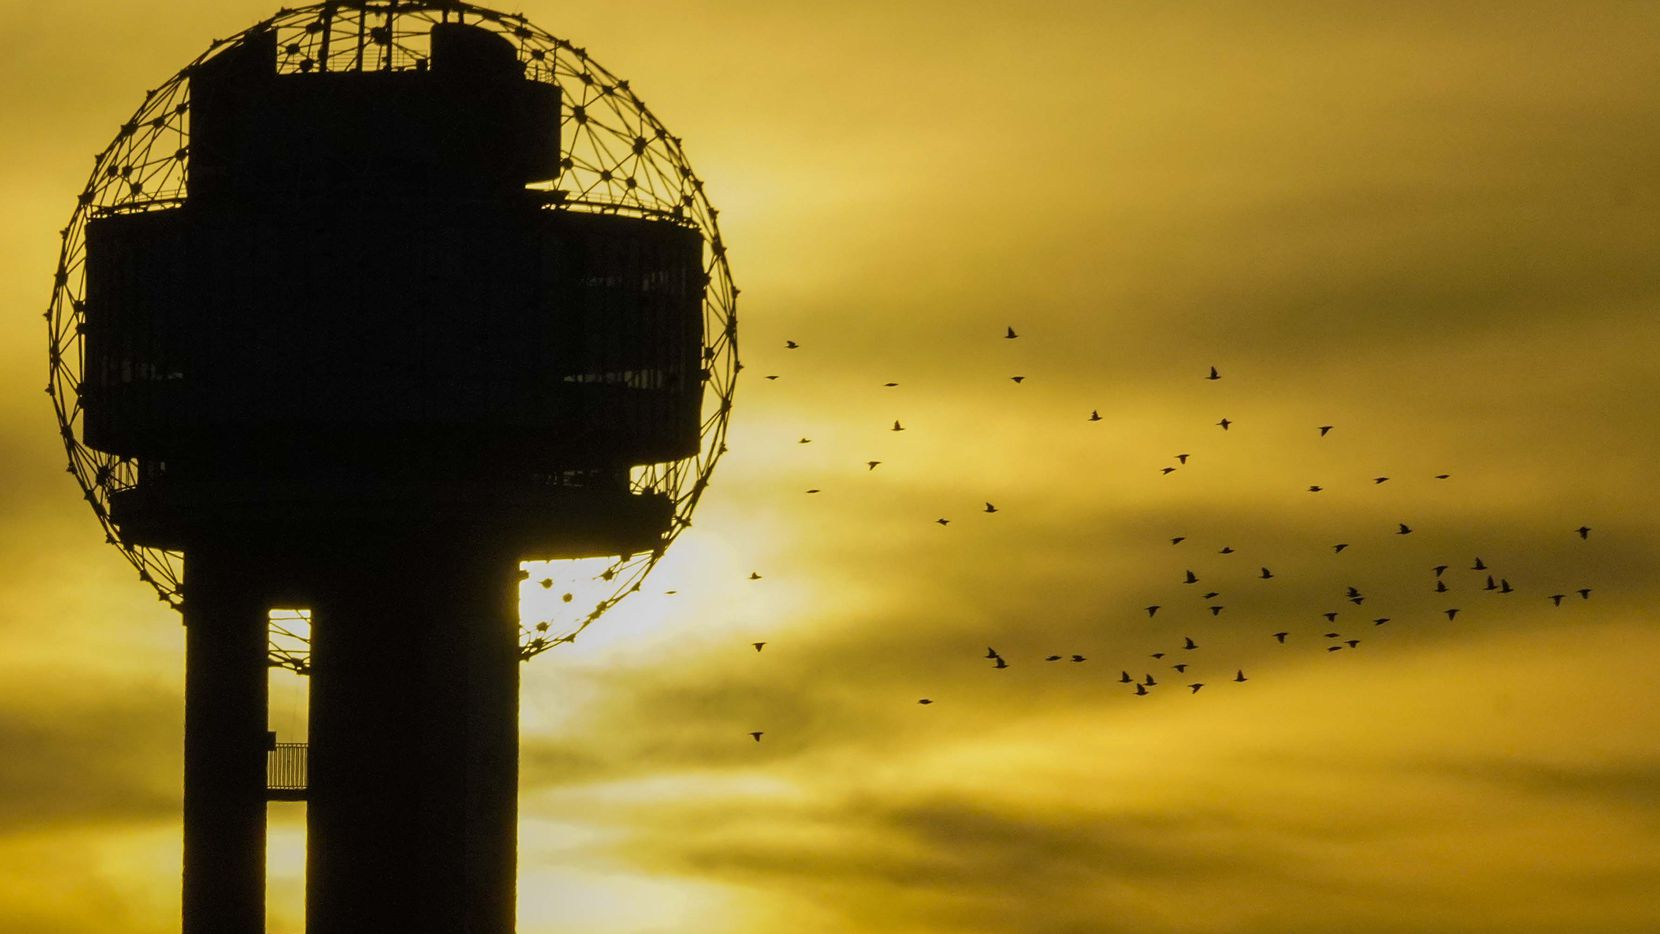 The sun sets as a flock of birds flies past Reunion Tower on Tuesday, June 30, 2020, in Dallas. Dissipating Saharan dust passing through North Texas continues to enhance sunrises and sunsets. The dust plume is a mass of dry air, known as the Saharan Air Layer, that forms every year over the Sahara Desert and moves toward the Atlantic, according to the National Oceanic and Atmospheric Administration. (Smiley N. Pool/The Dallas Morning News)